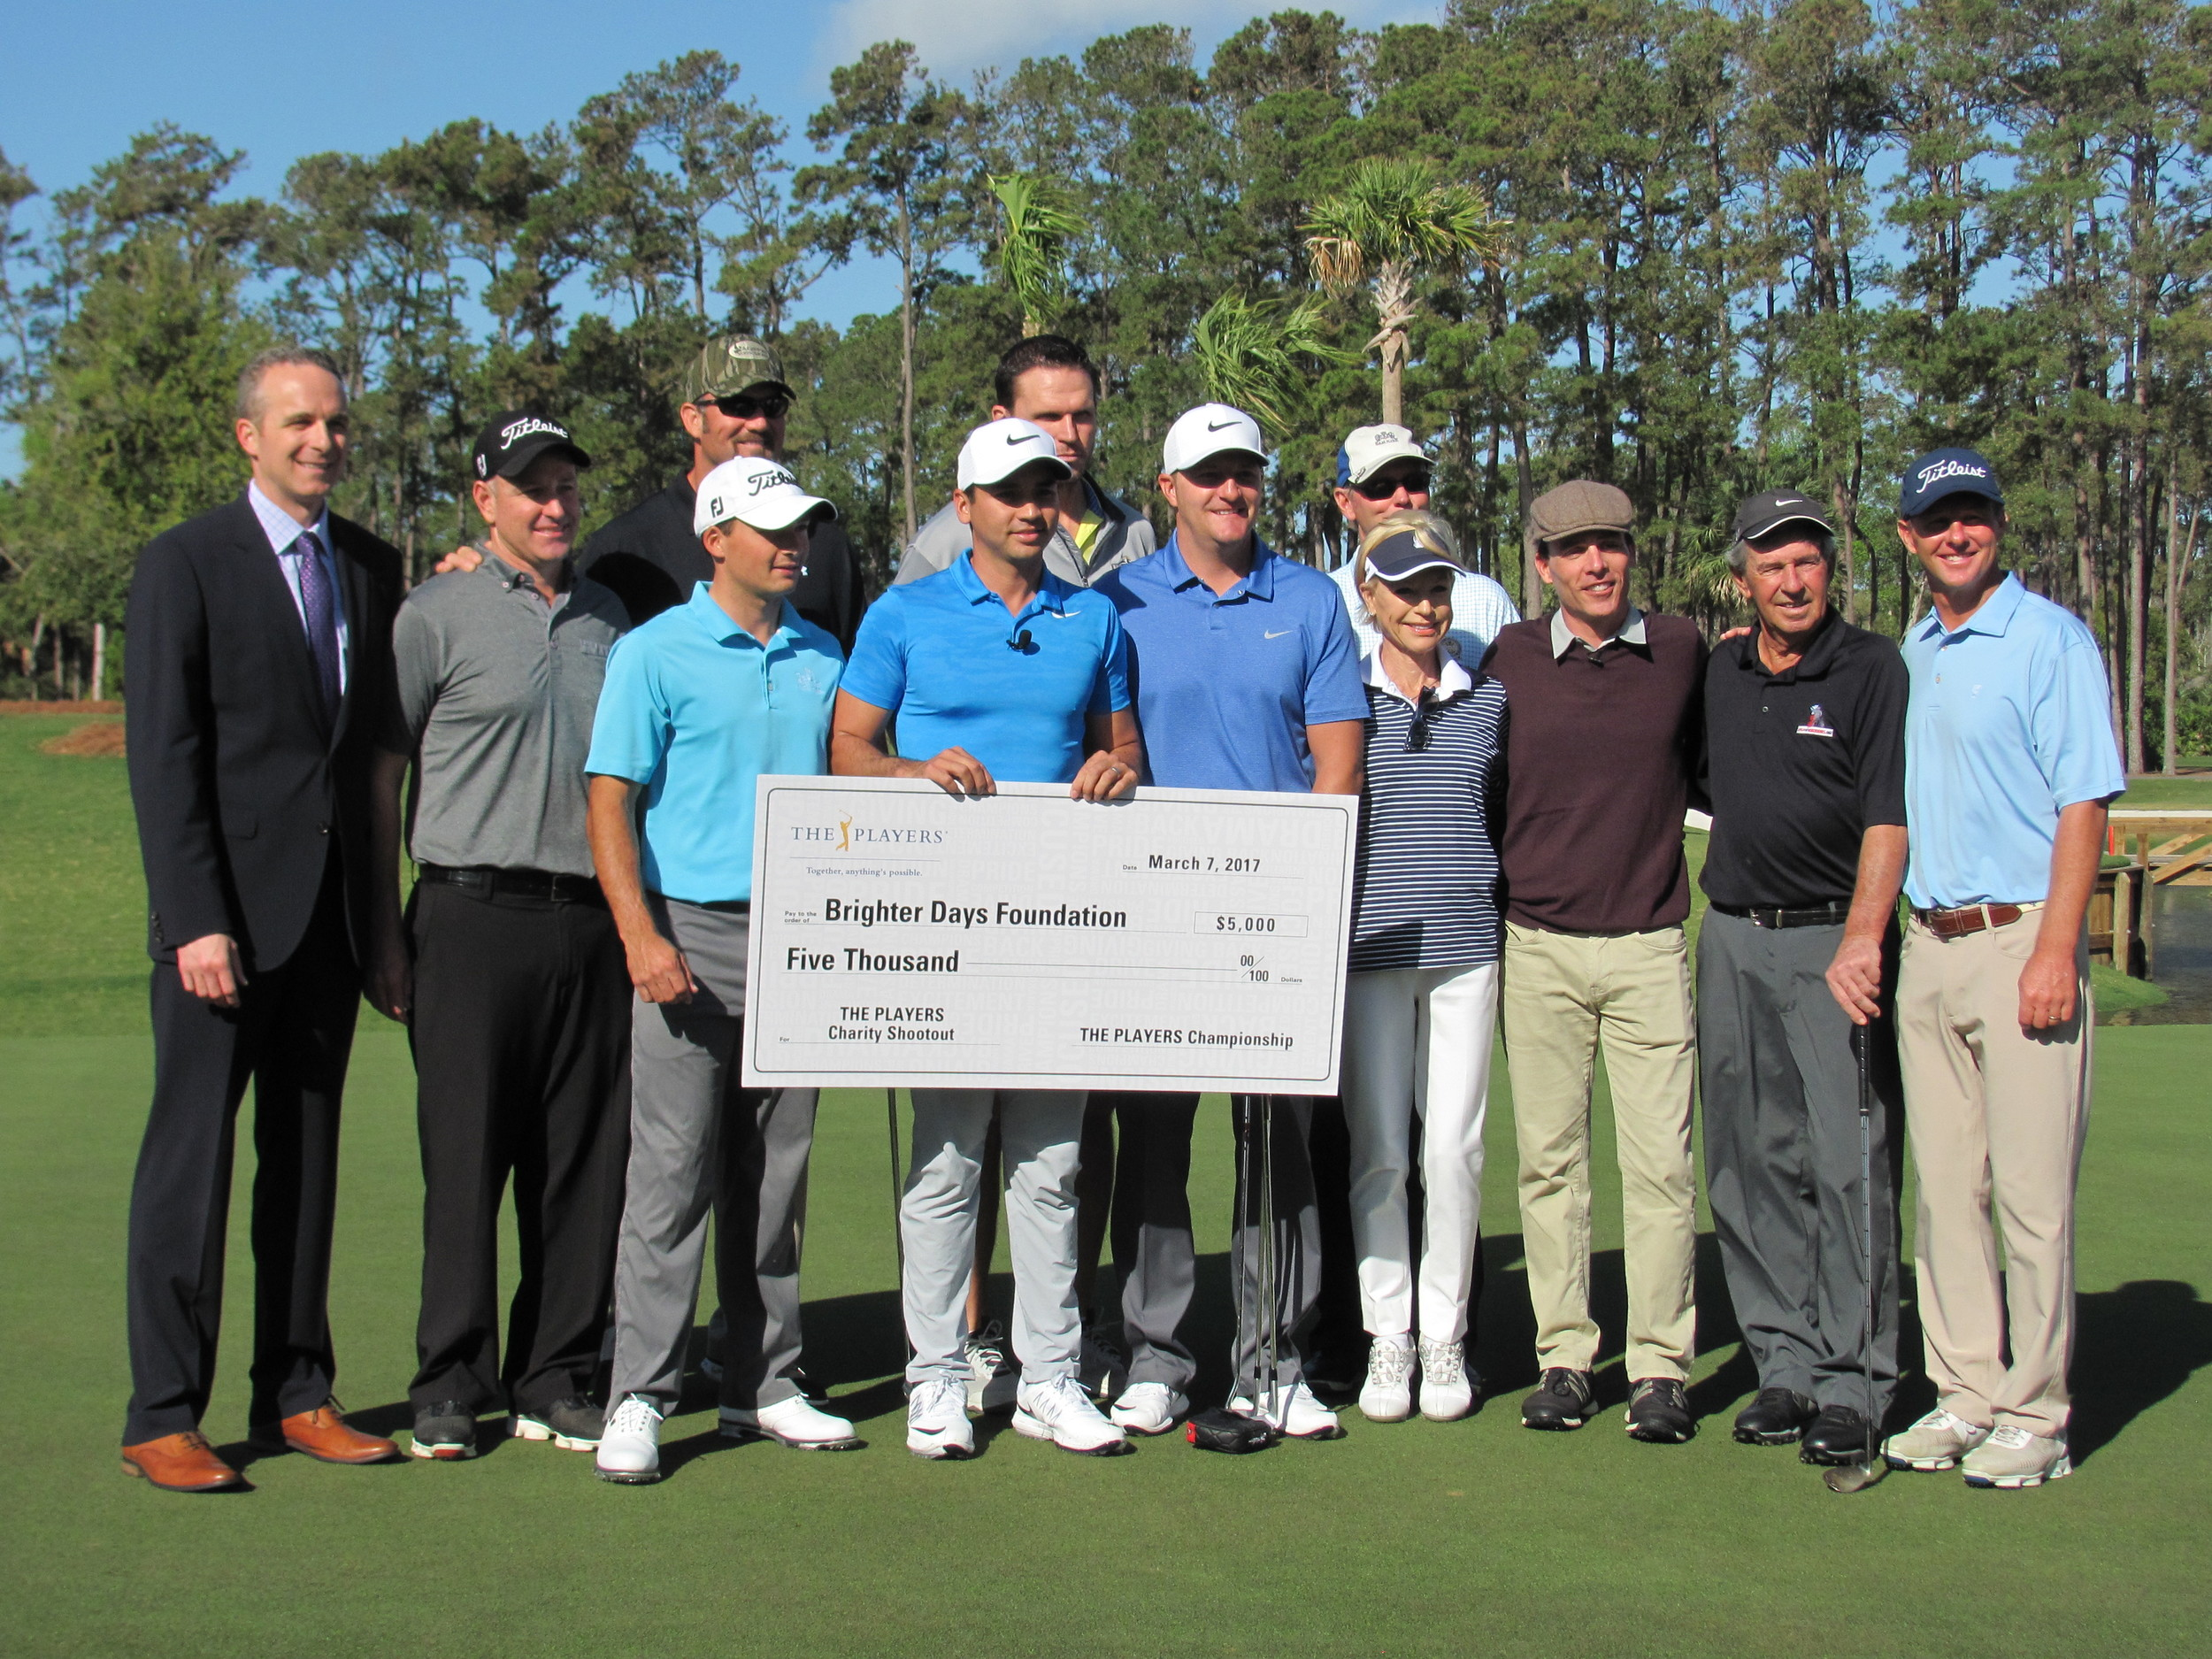 THE PLAYERS present Jason Day's charity with a $5,000 check, and Jason Day donates $5,000 to each of the event's participating charities in turn.